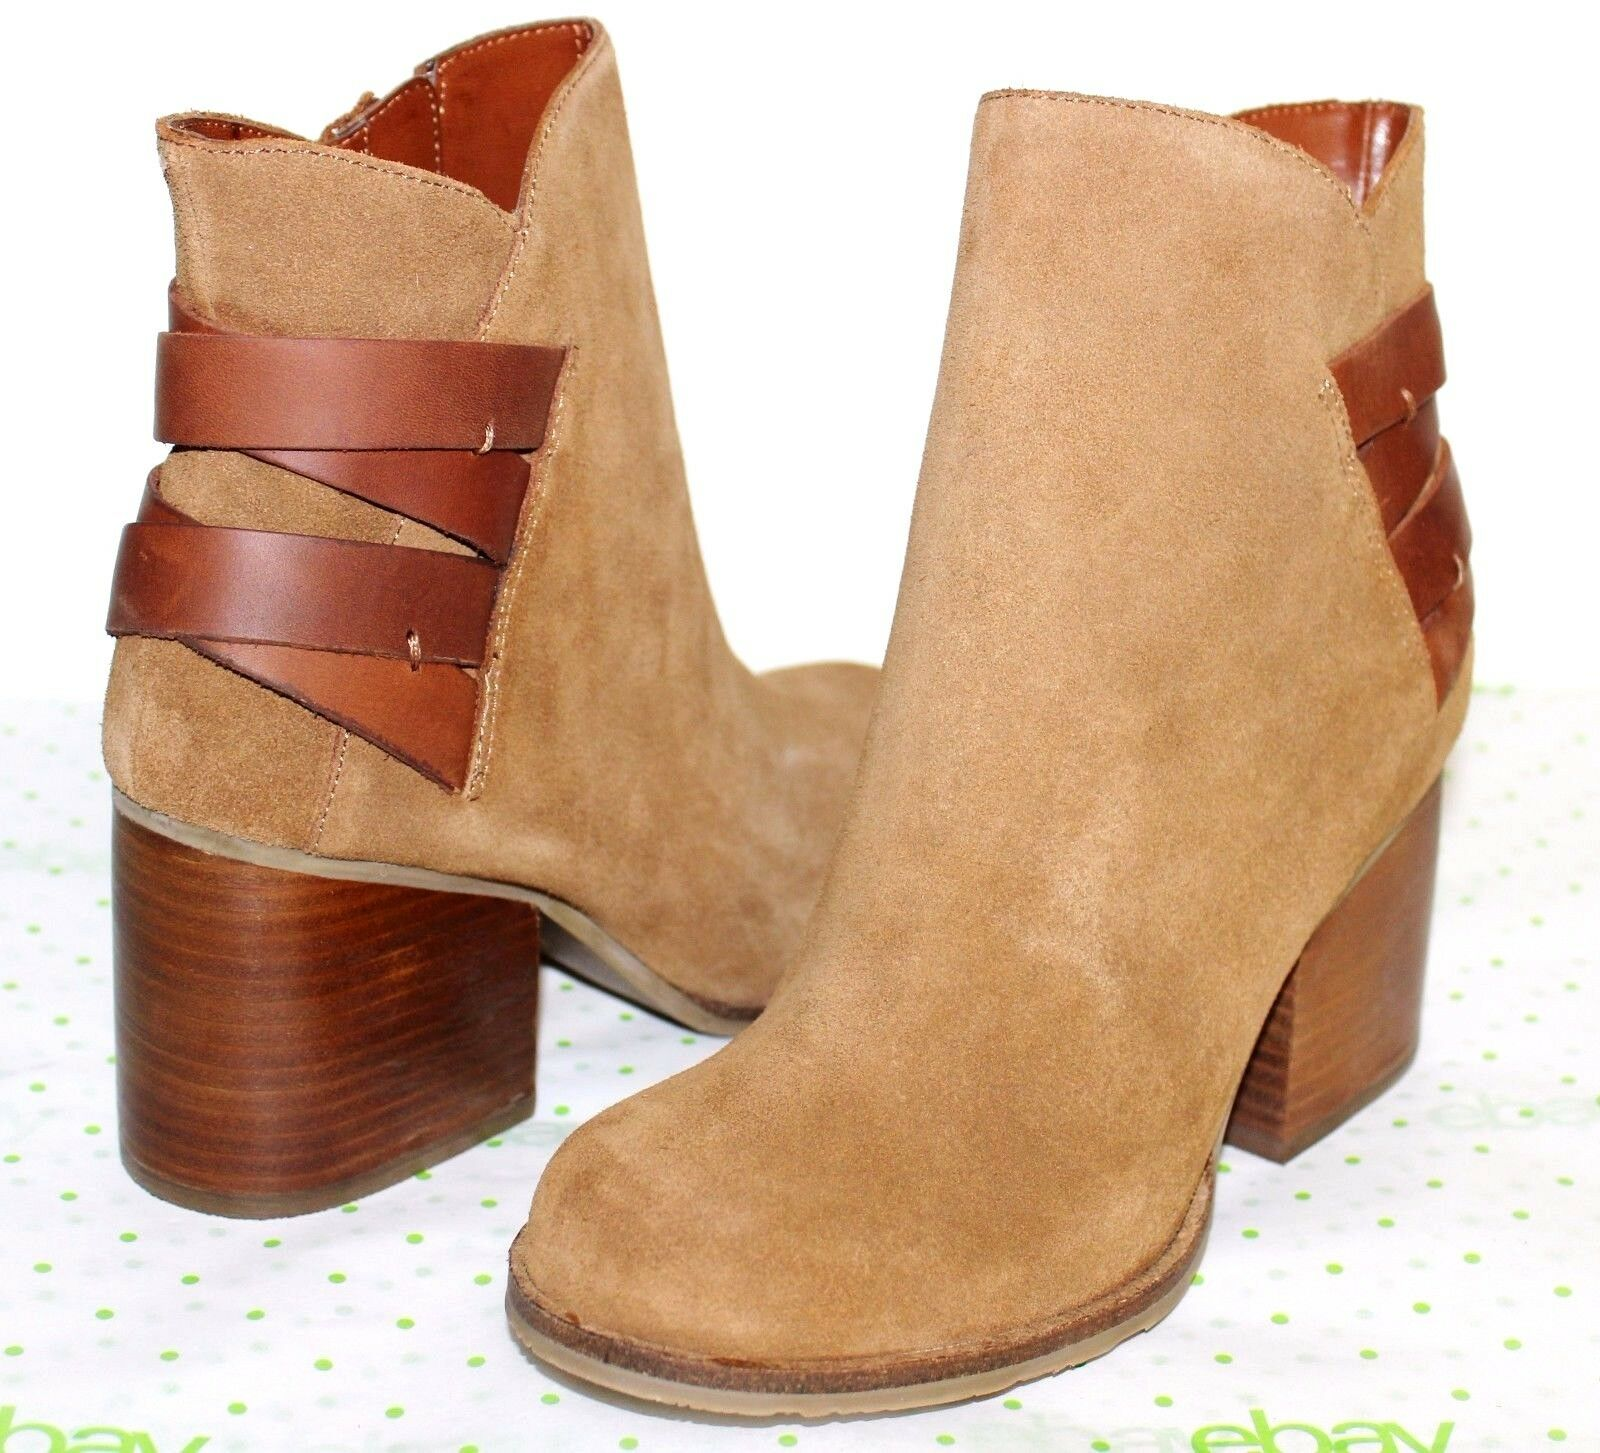 MIA HERITAGE Tan Suede Oiled Leather Straps 2.75 Heel Zip Boots 8.5 NEW  L@@K